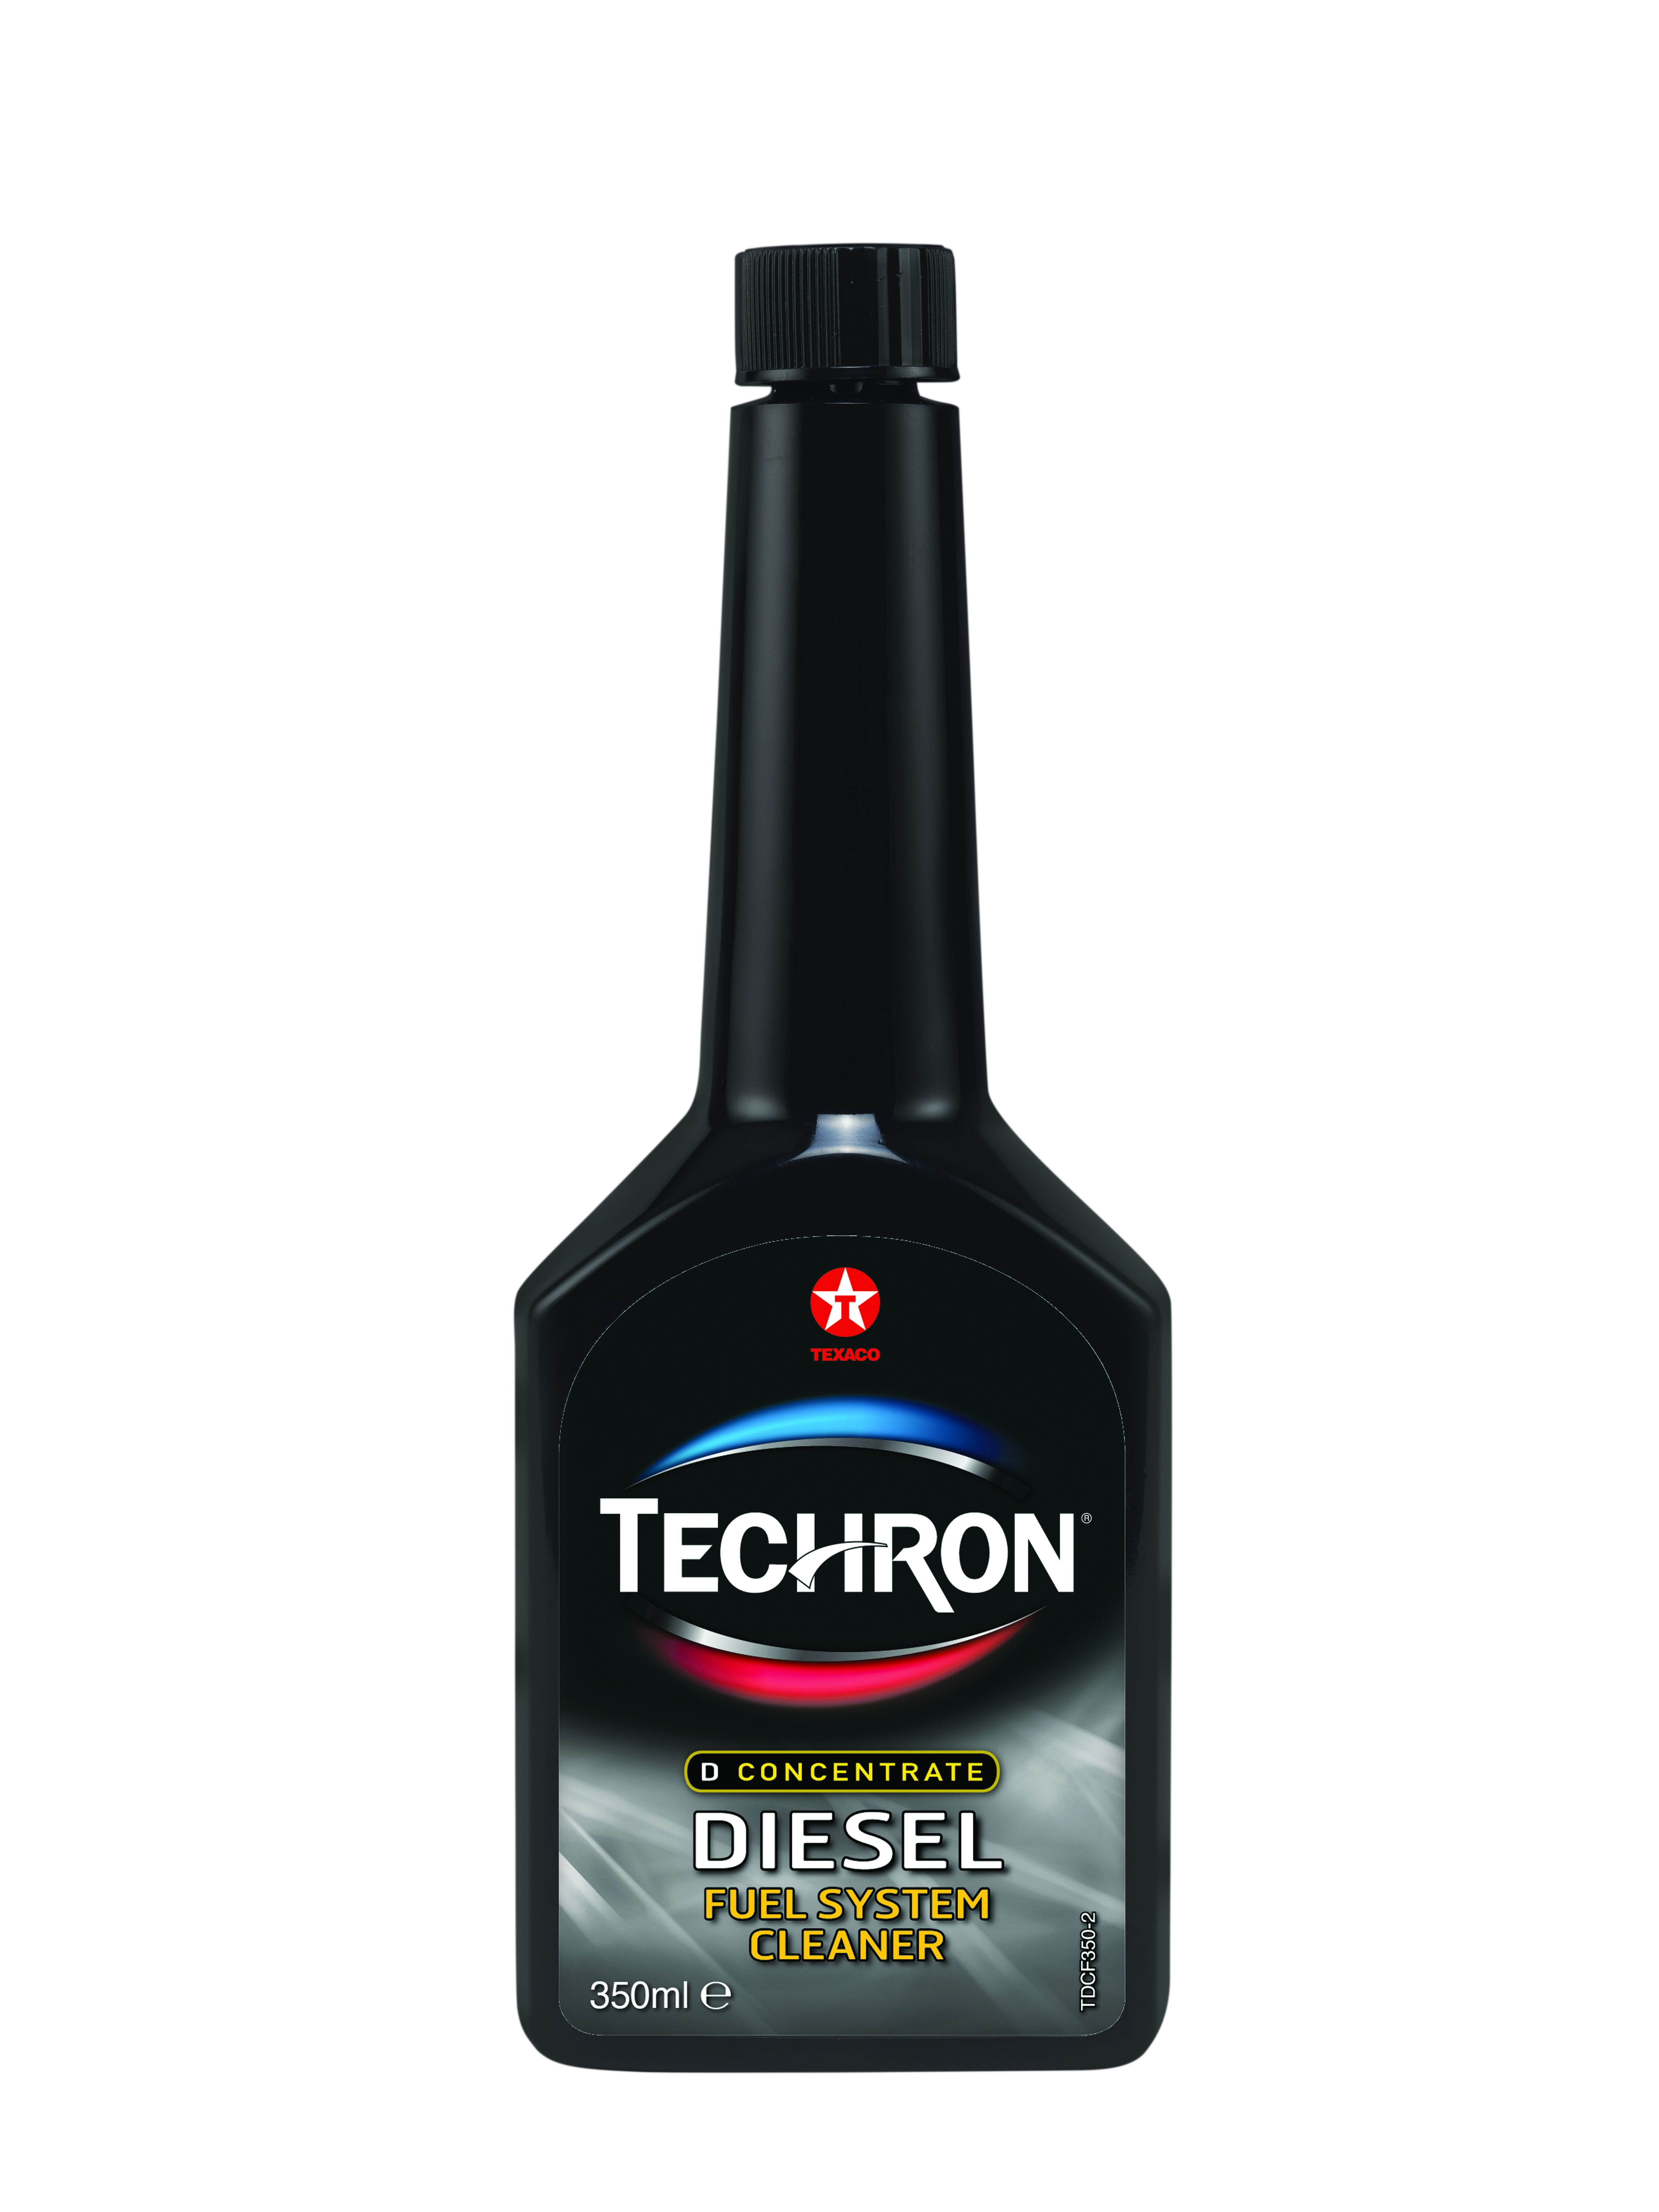 TECHRON D CONCENTRATE